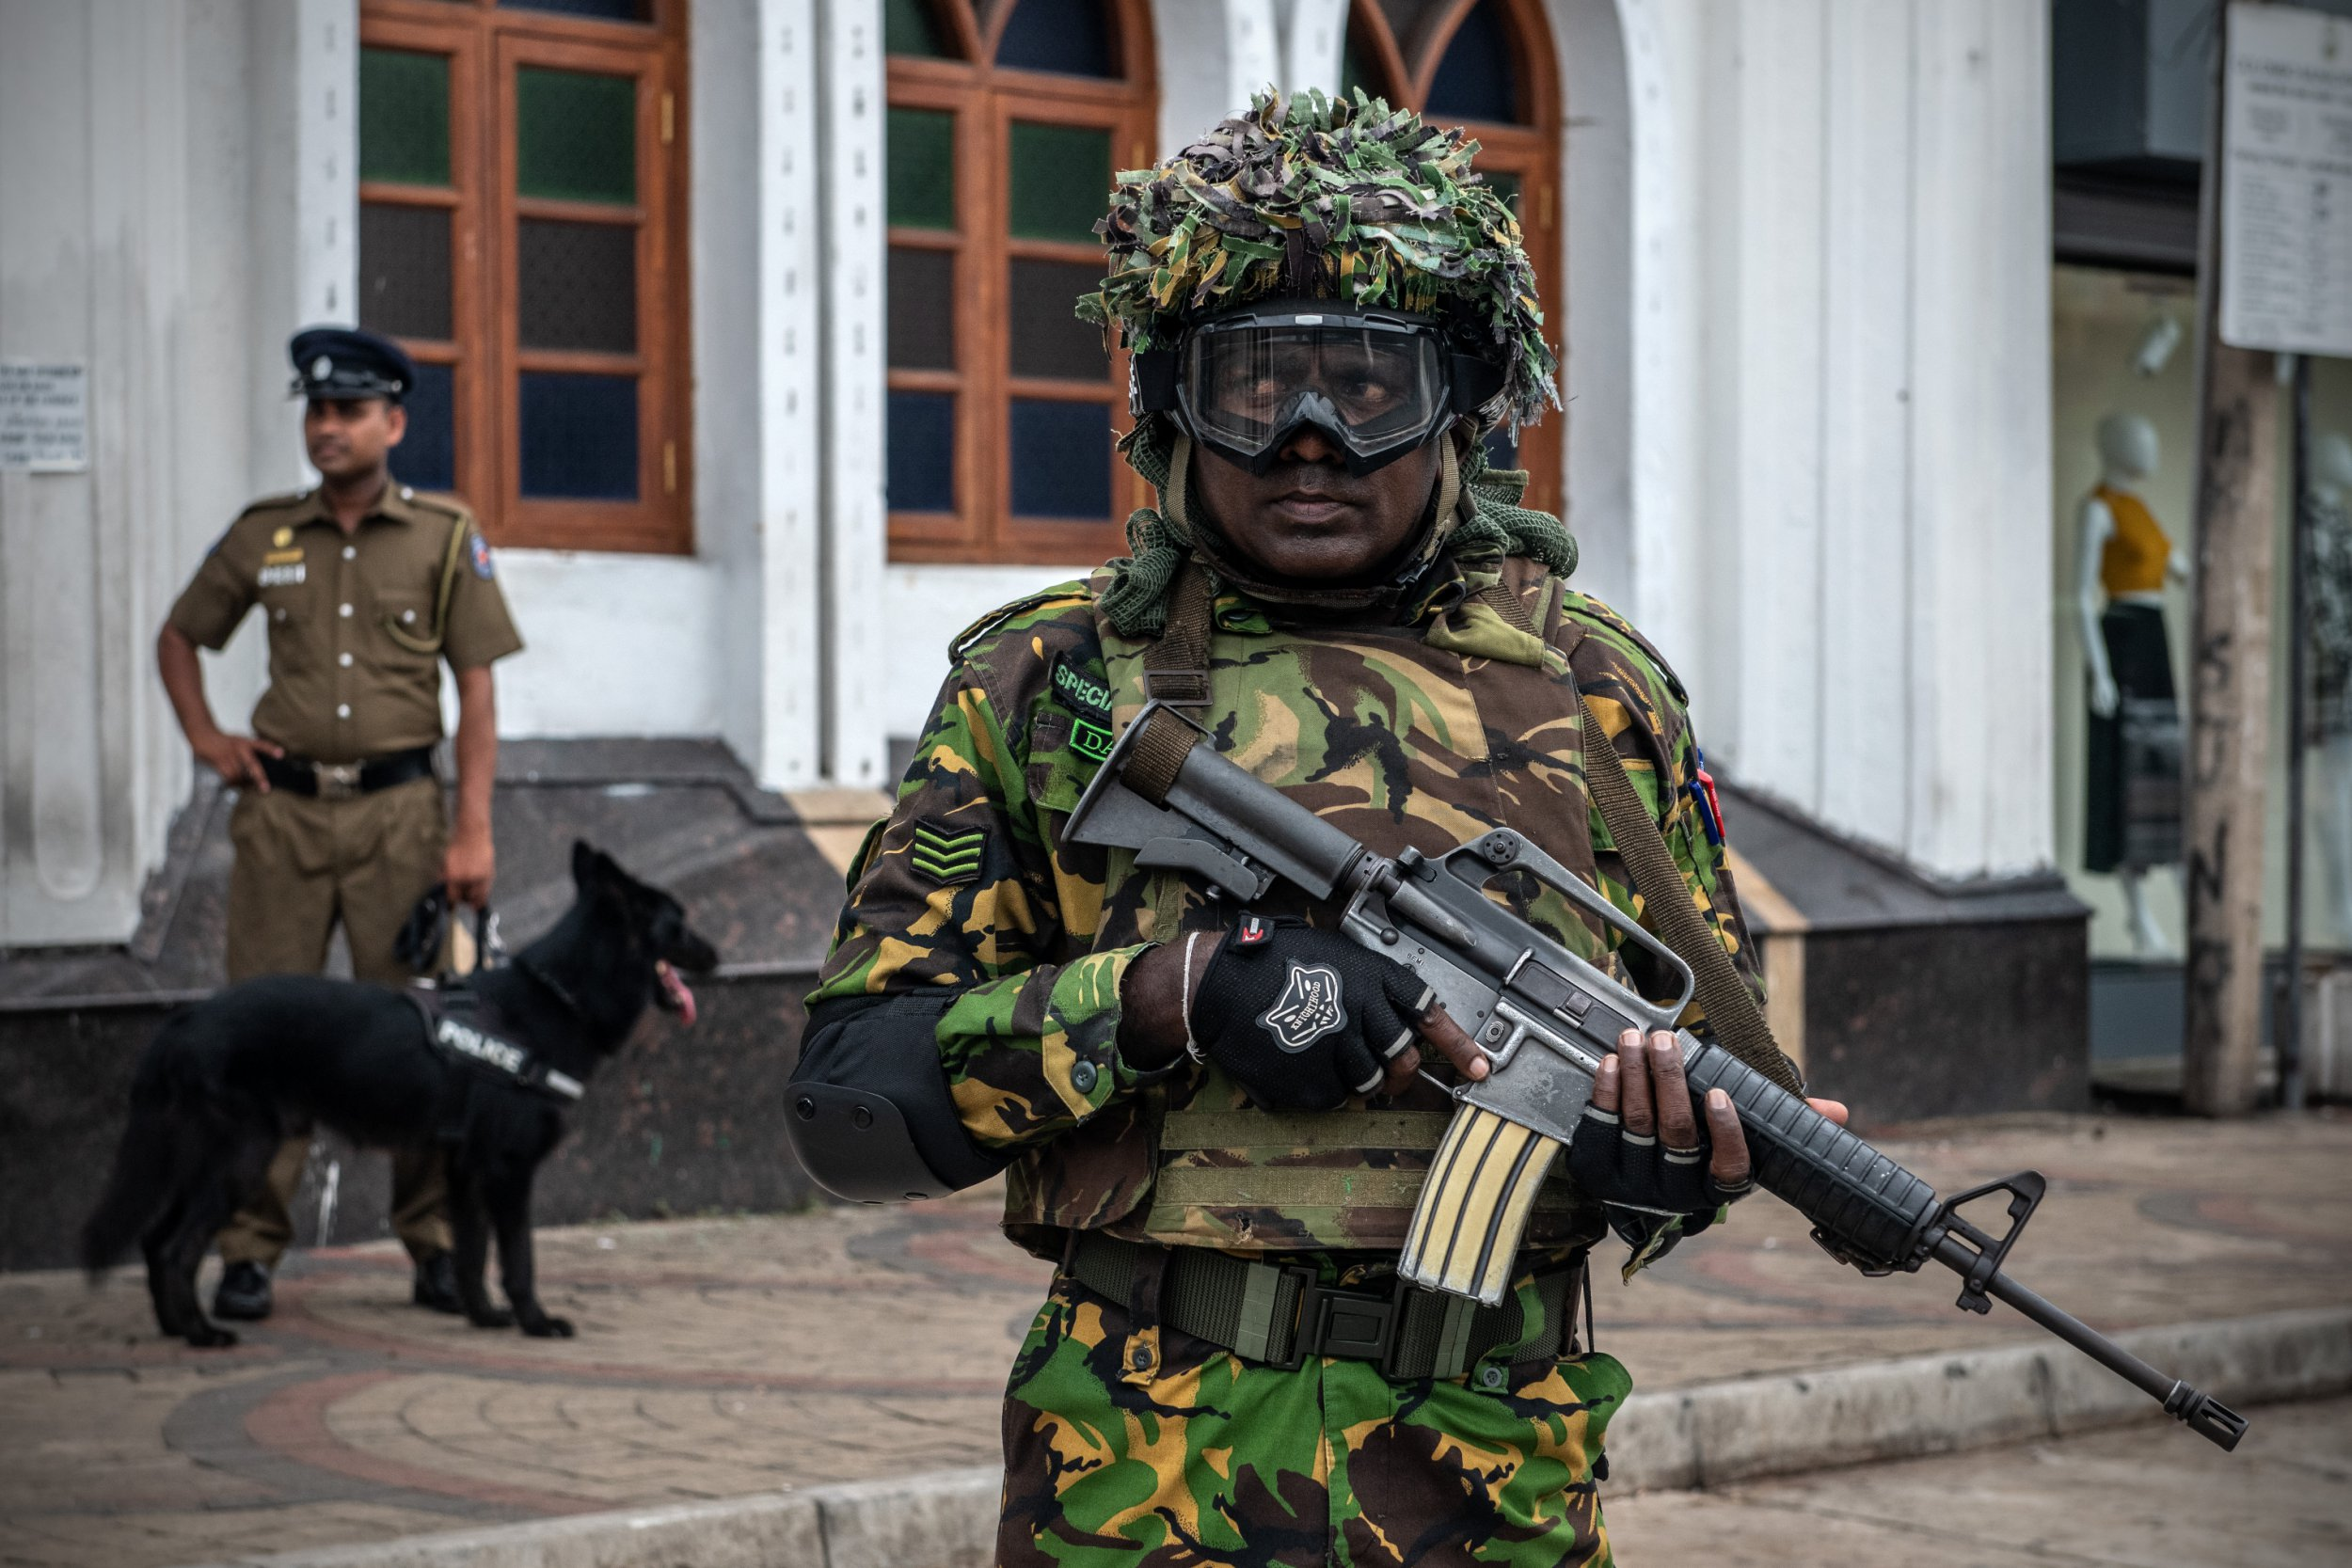 COLOMBO, SRI LANKA - APRIL 26: Police Special Task Force officers patrol outside Dawatagaha Jumma Masjid during Friday prayers on April 26, 2019 in Colombo, Sri Lanka. The Sri Lankan Health Ministry revised the death toll from the deadly terror attacks on Easter Sunday to 253 after coordinated attacks on three churches and three luxury hotels in the Colombo area and eastern city of Batticaloa, injuring hundreds. Based on reports, six foreign police agencies and Interpol, including Scotland Yard from the UK and the FBI from the US, are currently assisting local police as the Islamic State group claimed responsibility for the attacks although there has been no public evidence of direct involvement. (Photo by Carl Court/Getty Images)